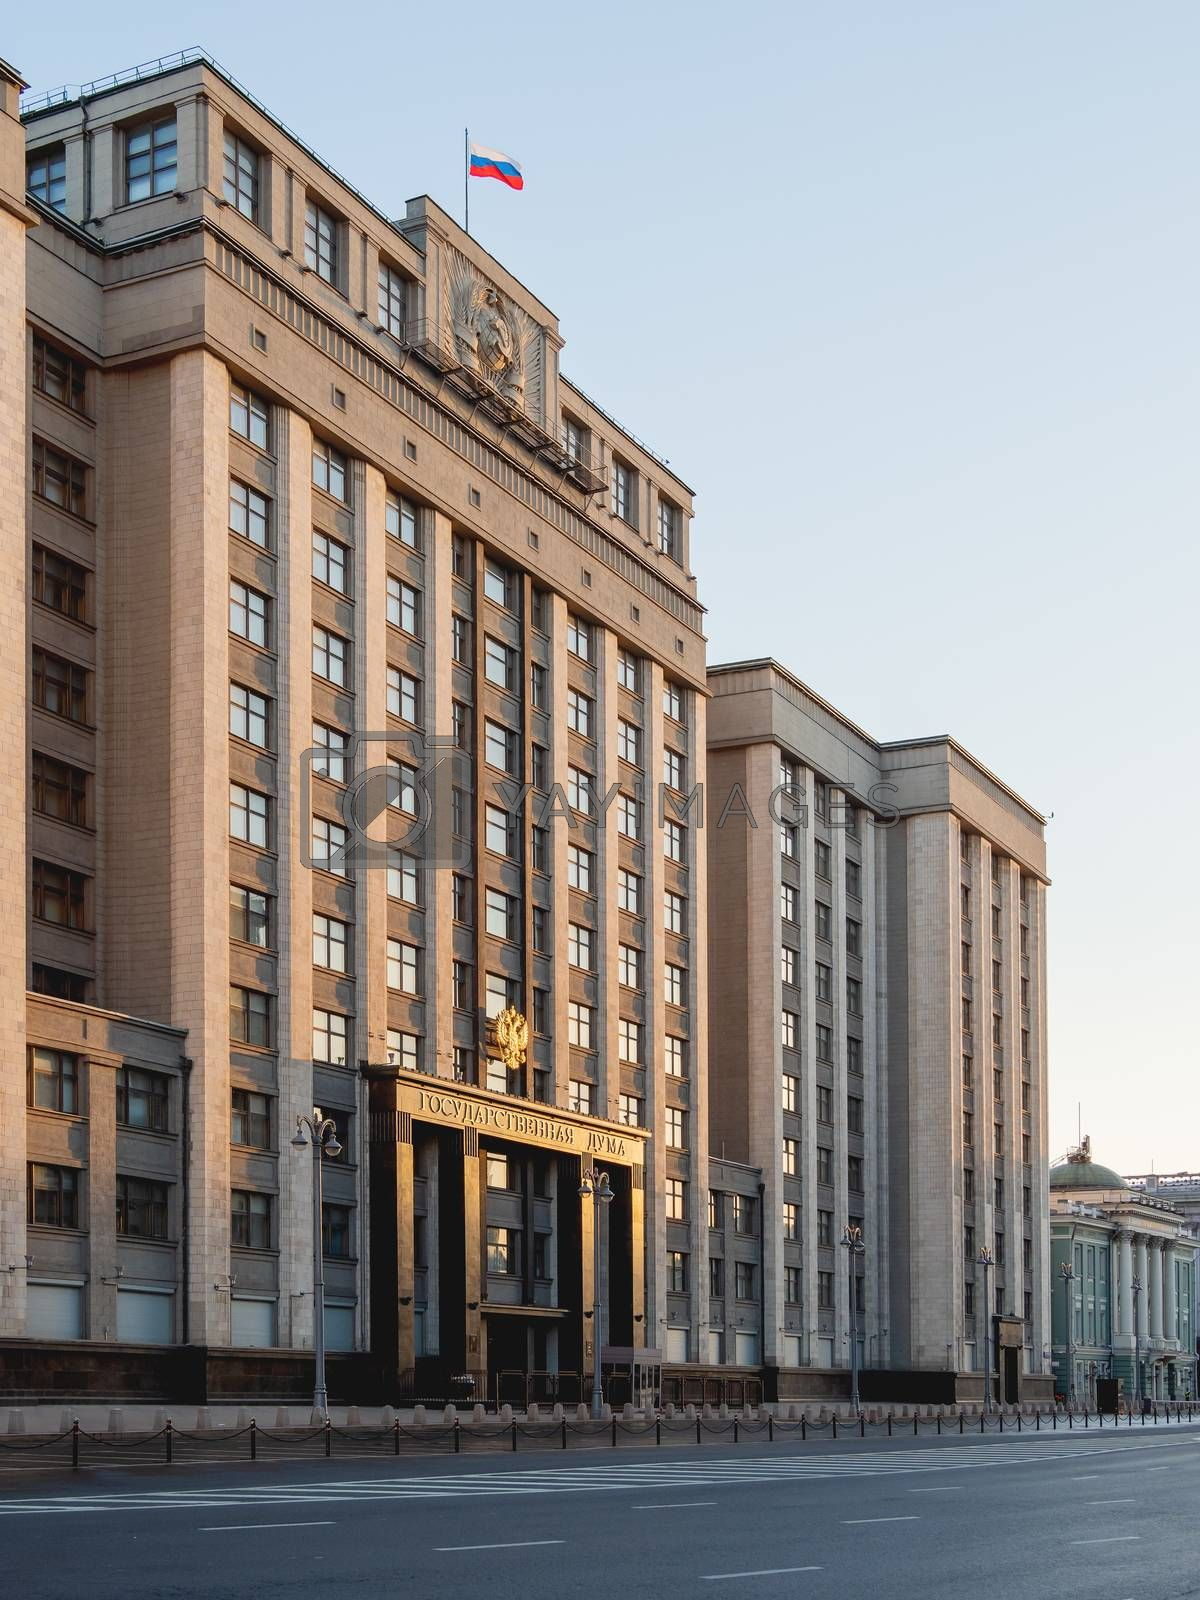 Building of State Duma of Russia inscribed - State Parliament . Deserted Okhotny Ryad street. Moscow, Russia.